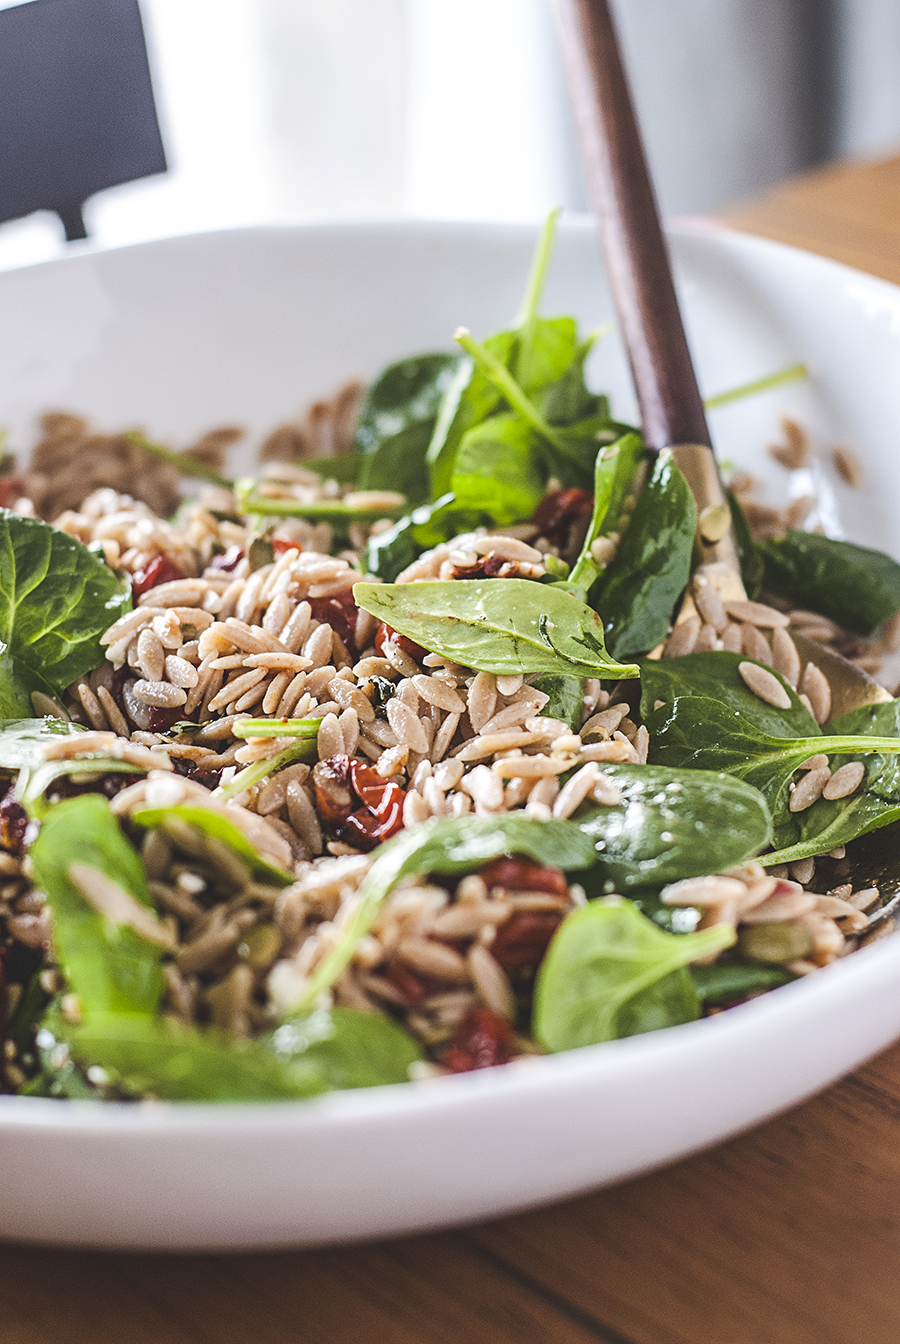 This sun-dried tomato orzo salad features fresh spinach, lots of salty feta and crunchy pepitas, and roasted cherry tomatoes, and is finished with a simple, homemade Italian vinaigrette.